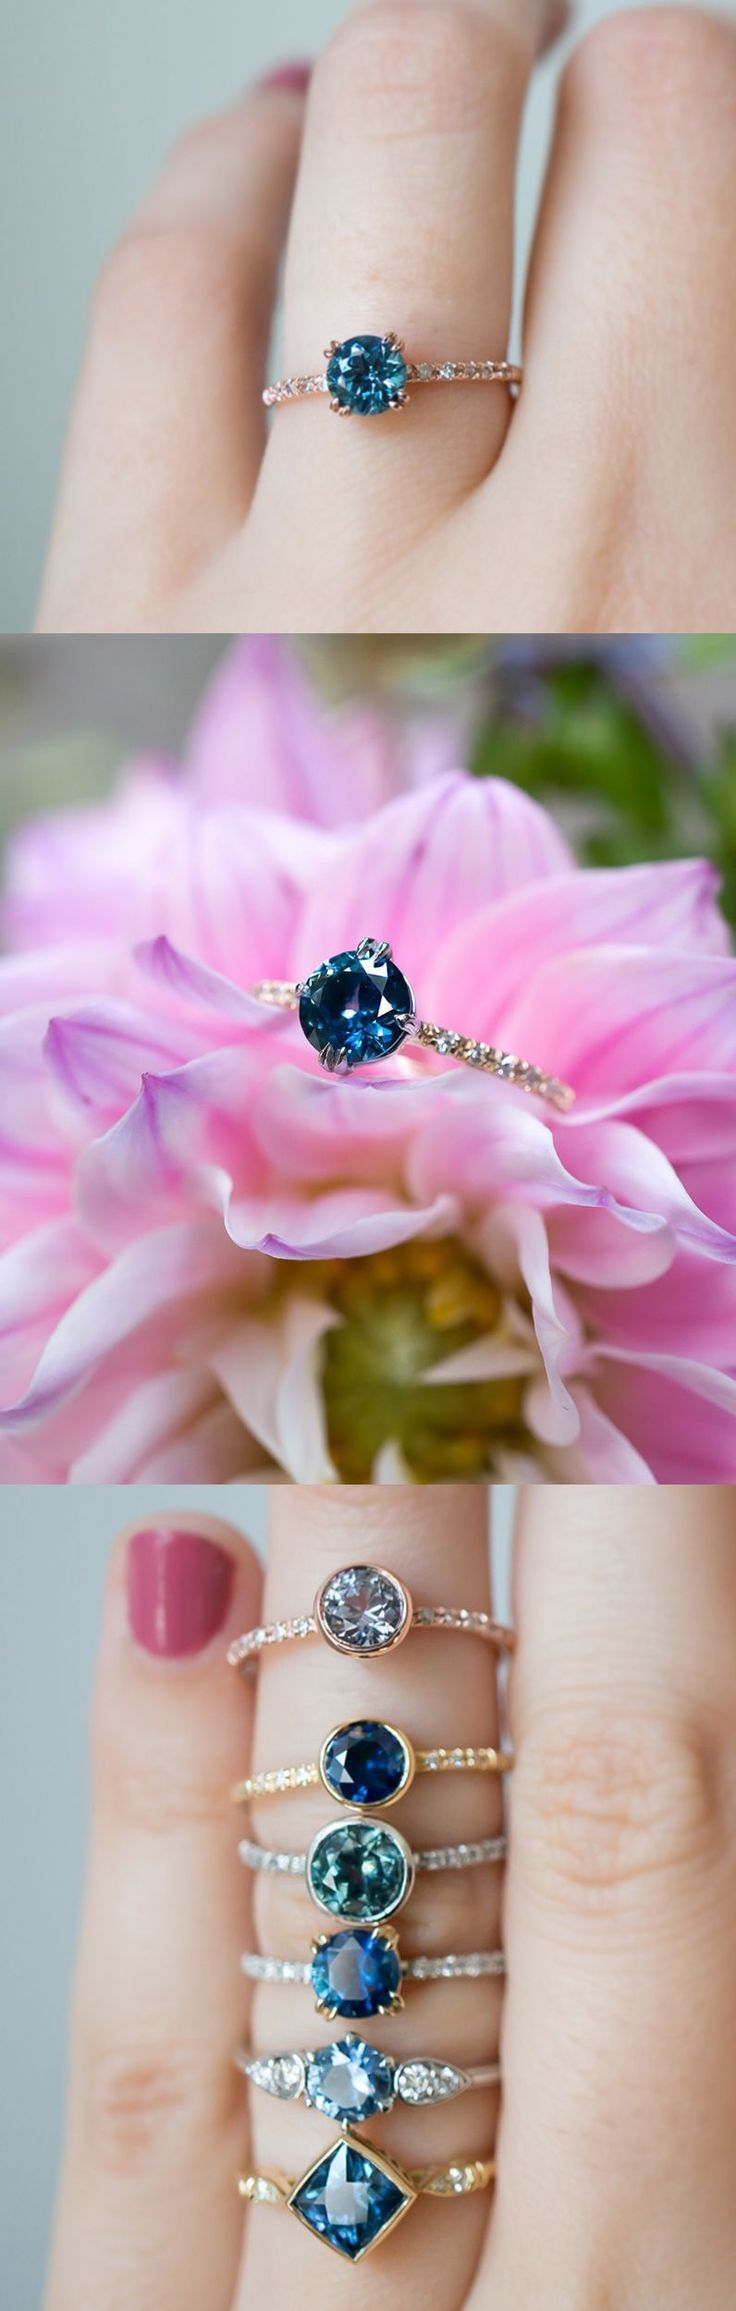 3823 best Rings images on Pinterest | Wedding bands, Diamond ...